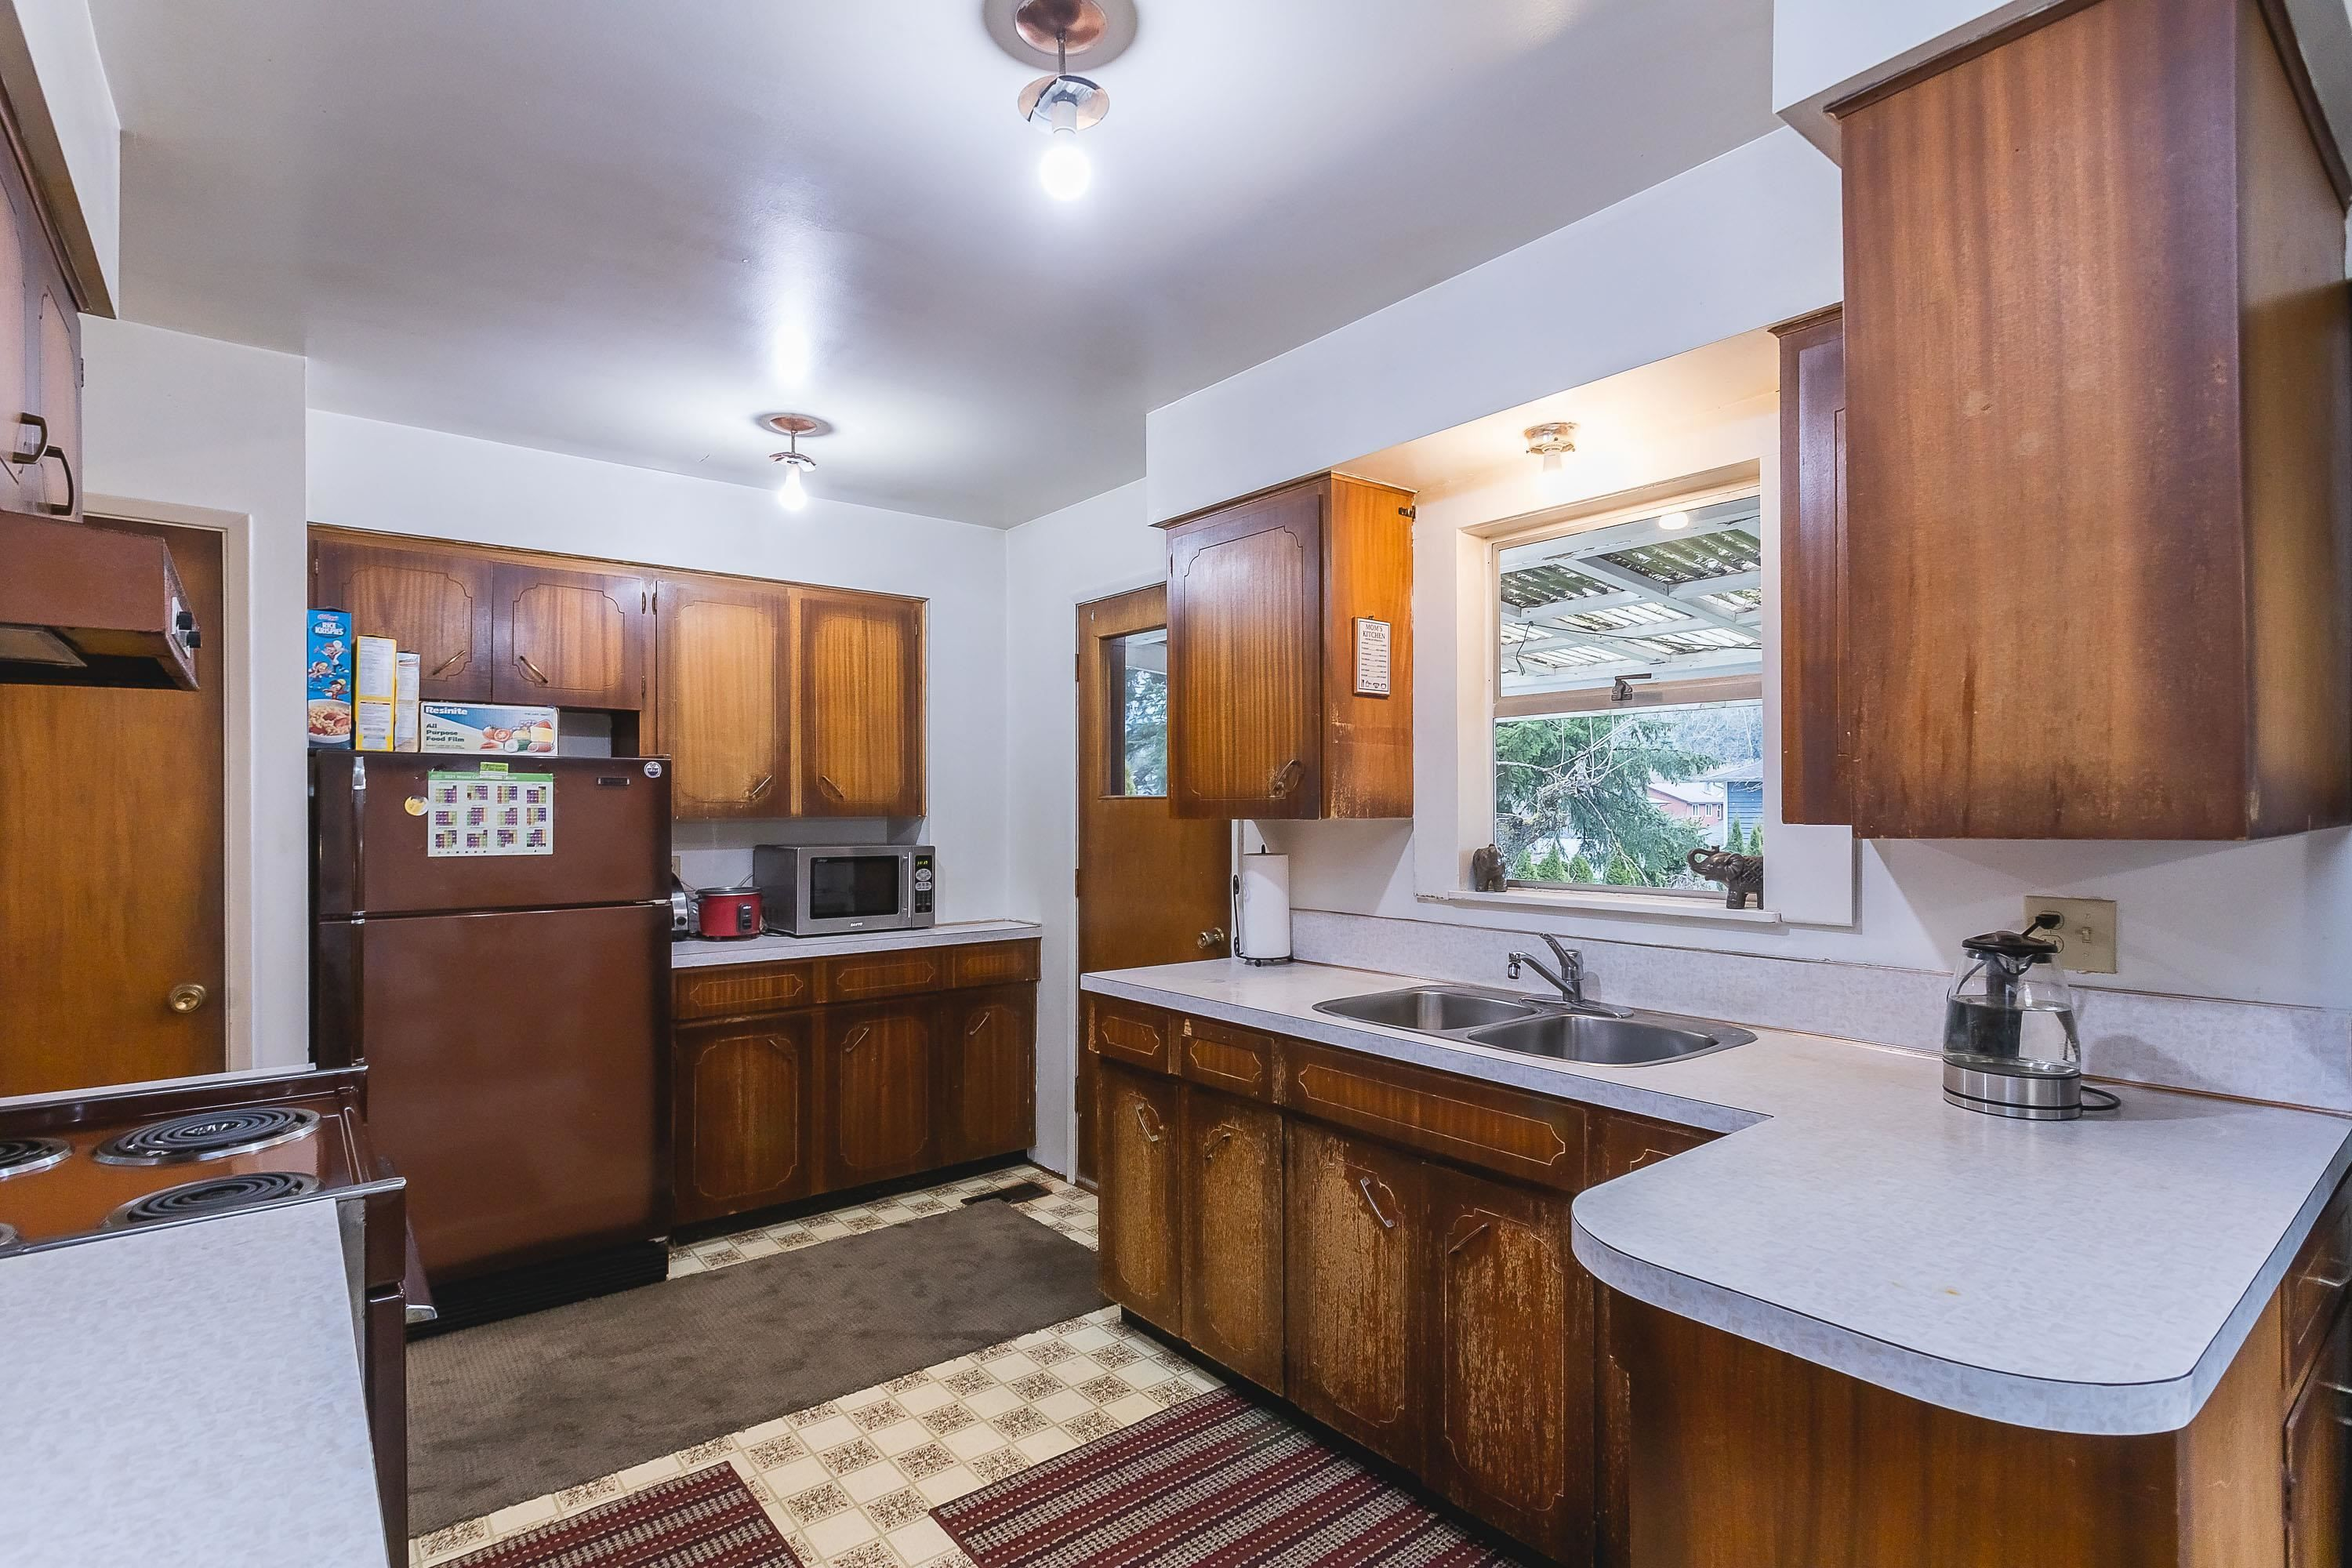 Photo 13: Photos: 3260 ULSTER Street in Port Coquitlam: Lincoln Park PQ House for sale : MLS®# R2613283